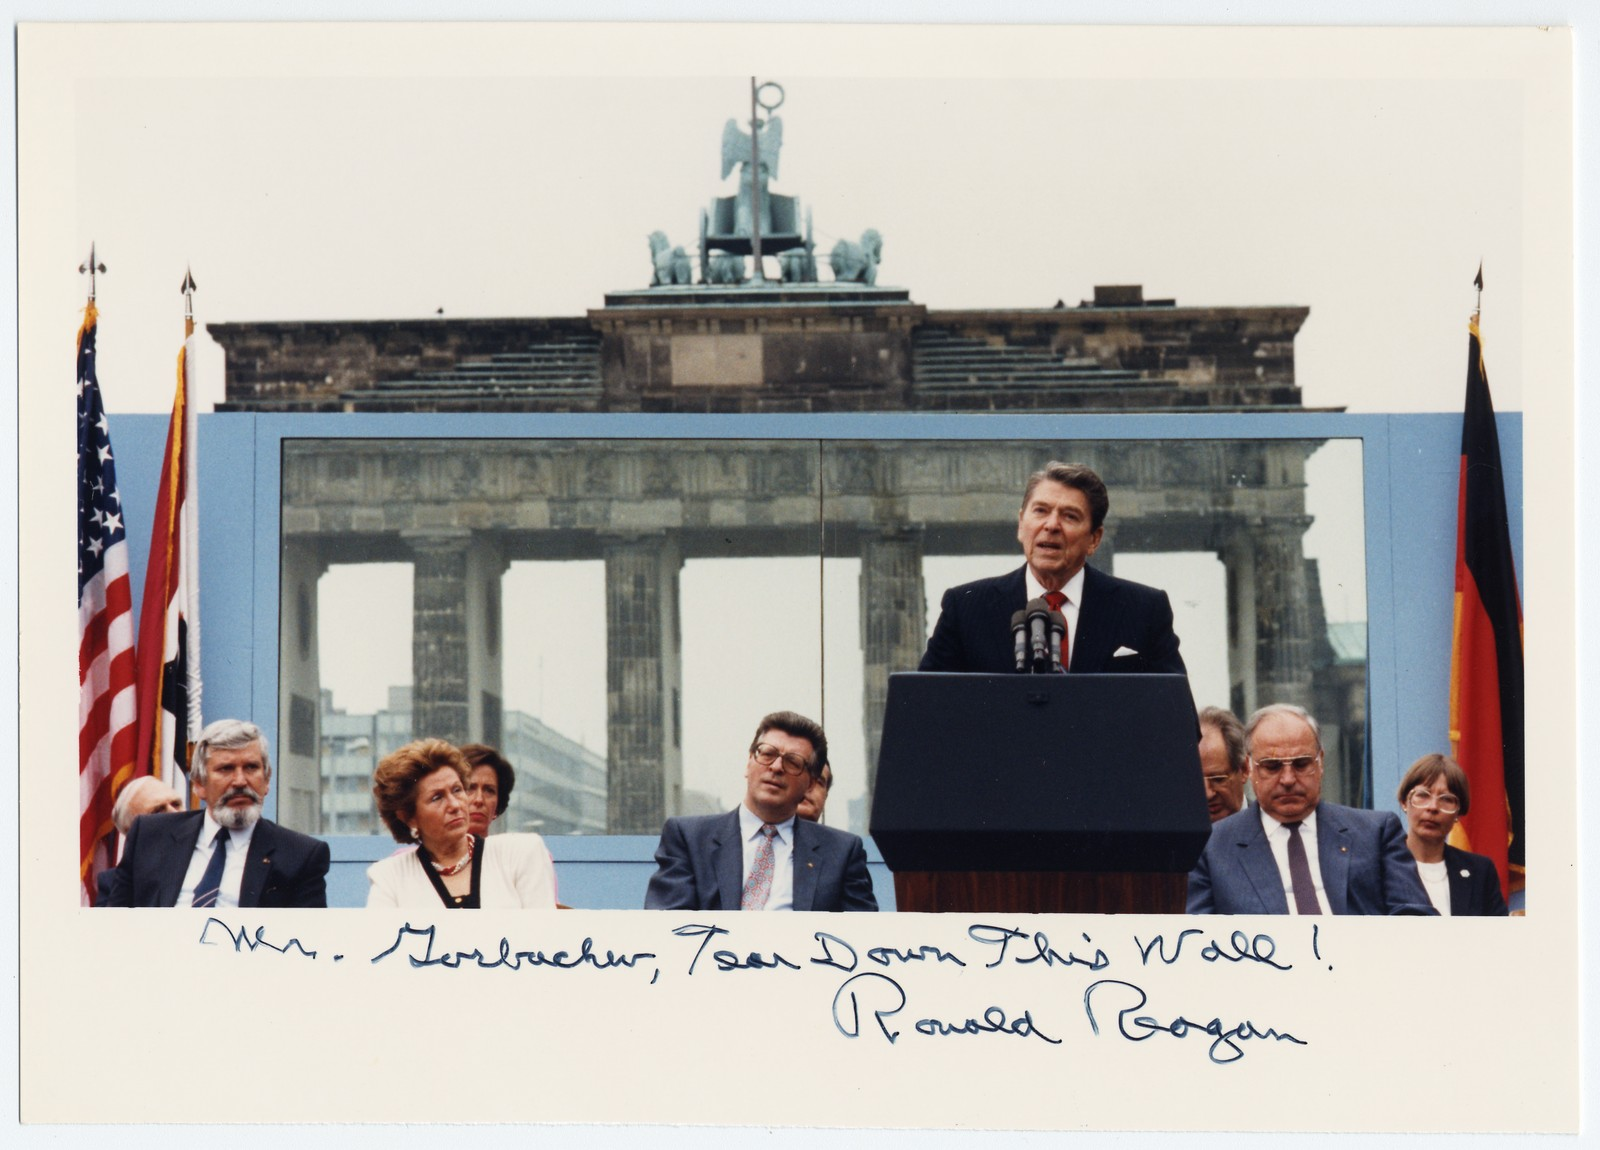 """A Ronald Reagan Photo in Front of the Berlin Wall, Inscribed With """"Mr. Gorbachev, Tear Down This Wall!"""""""